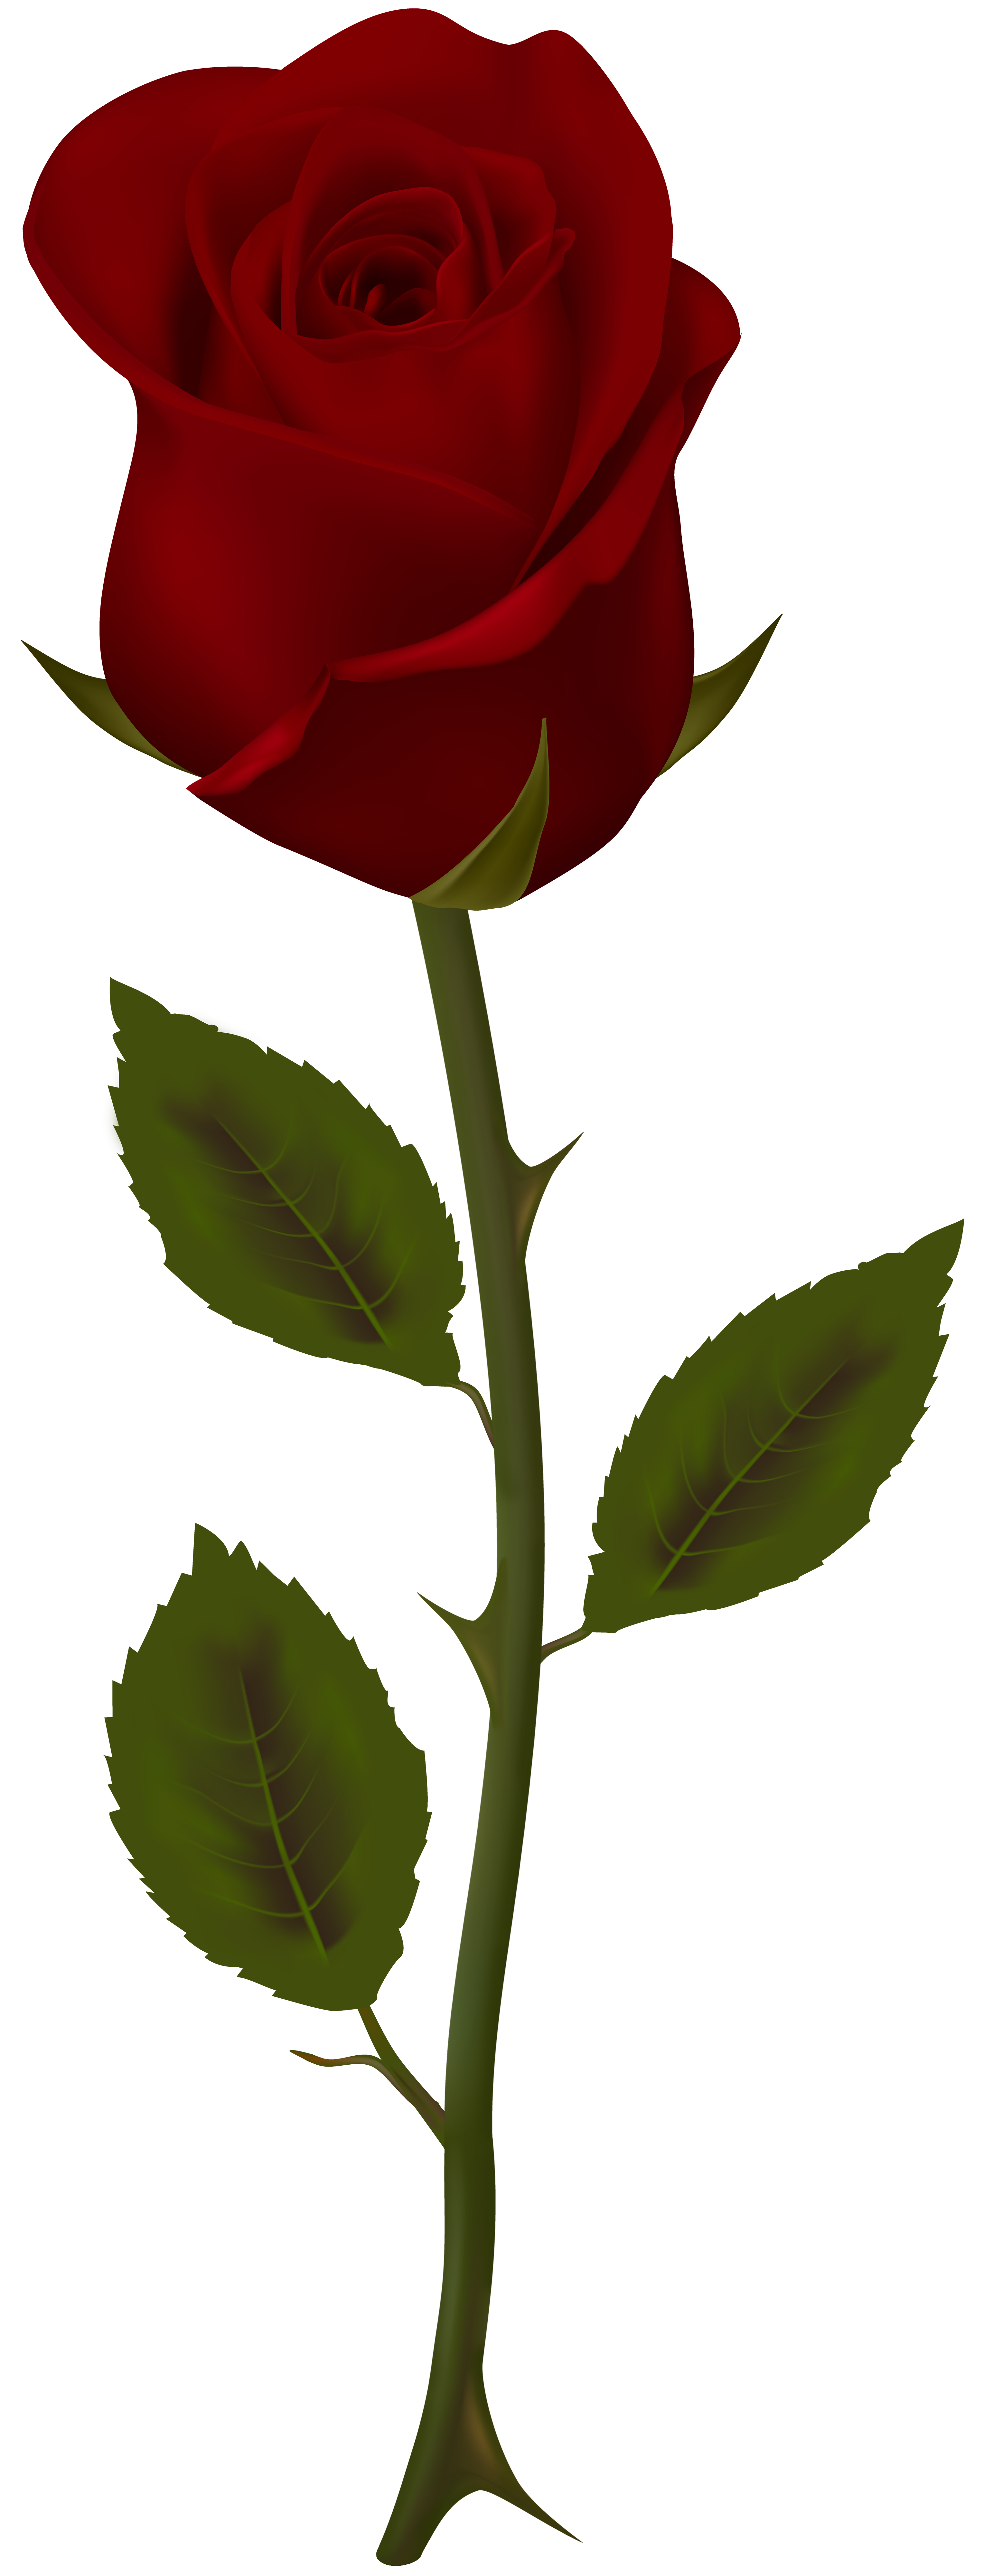 Dark Red Rose Transparent Png Clip Art Gallery Yopriceville High Quality Images And Transparent Pn Dark Red Roses Red Roses Wallpaper Rose Flower Pictures